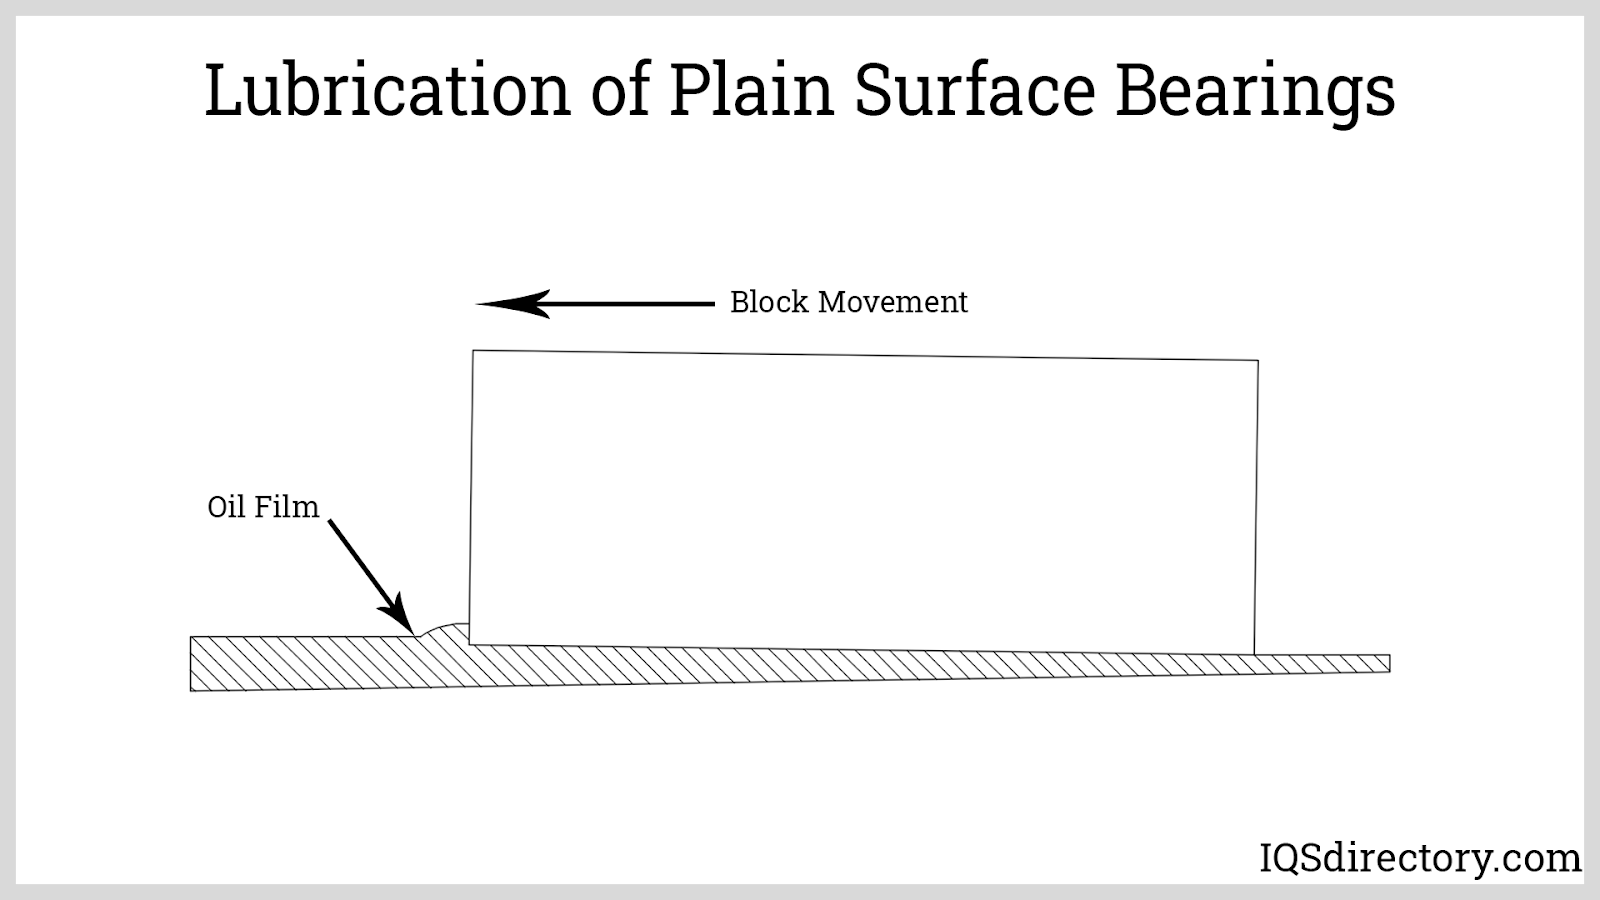 Lubrication of Plain Surface Bearings